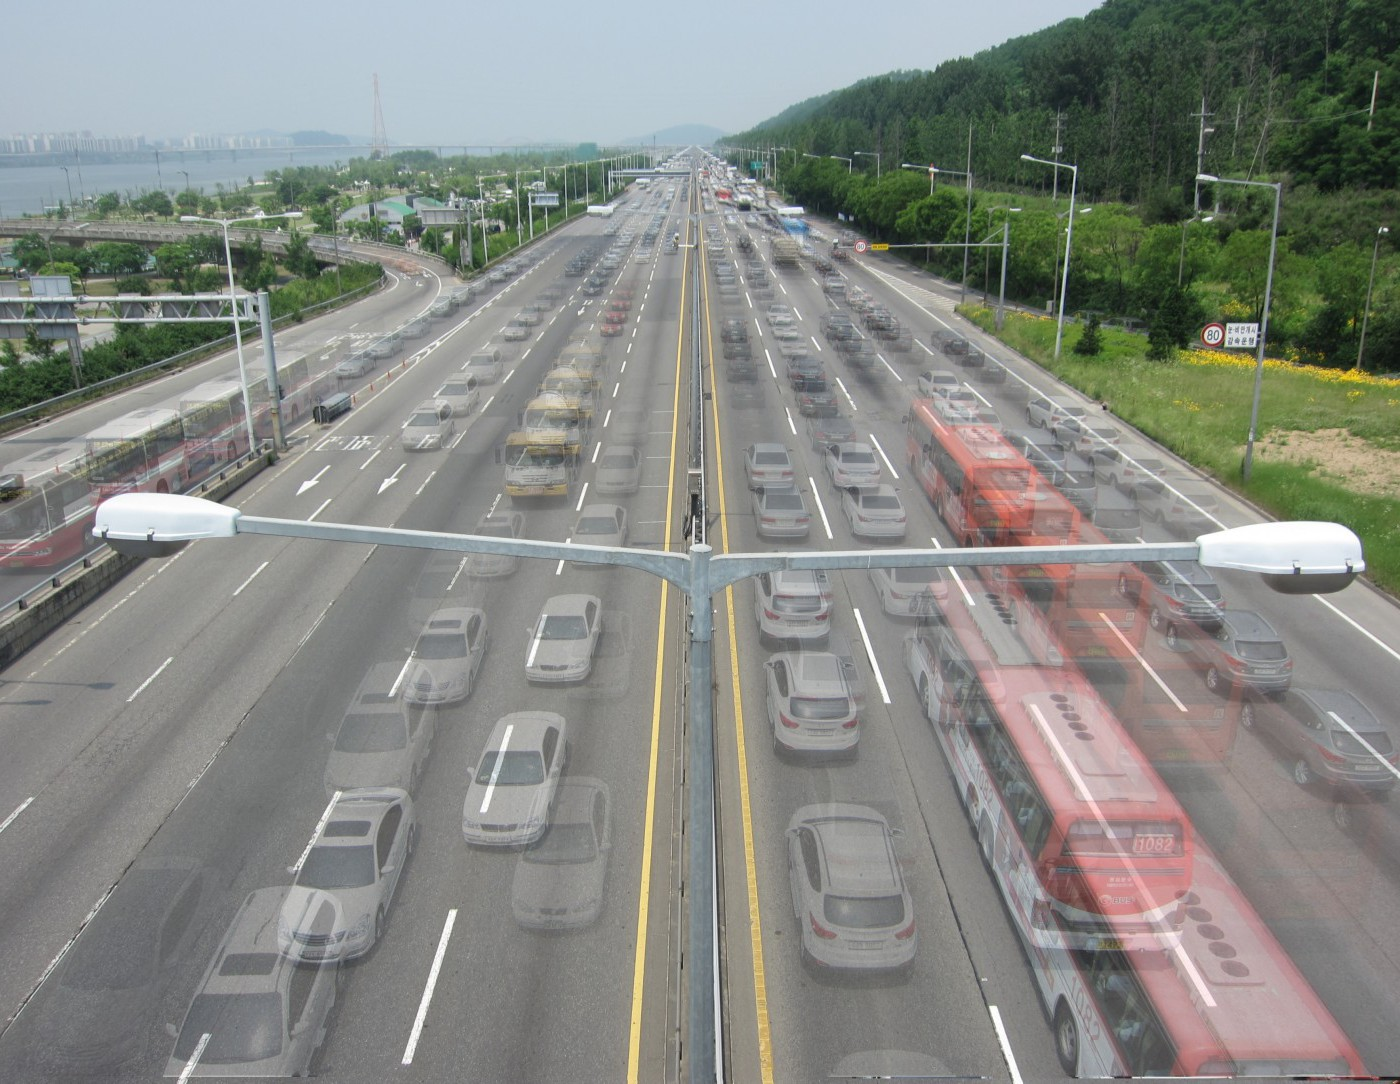 Expected Effects of Autonomous Vehicles in Korea